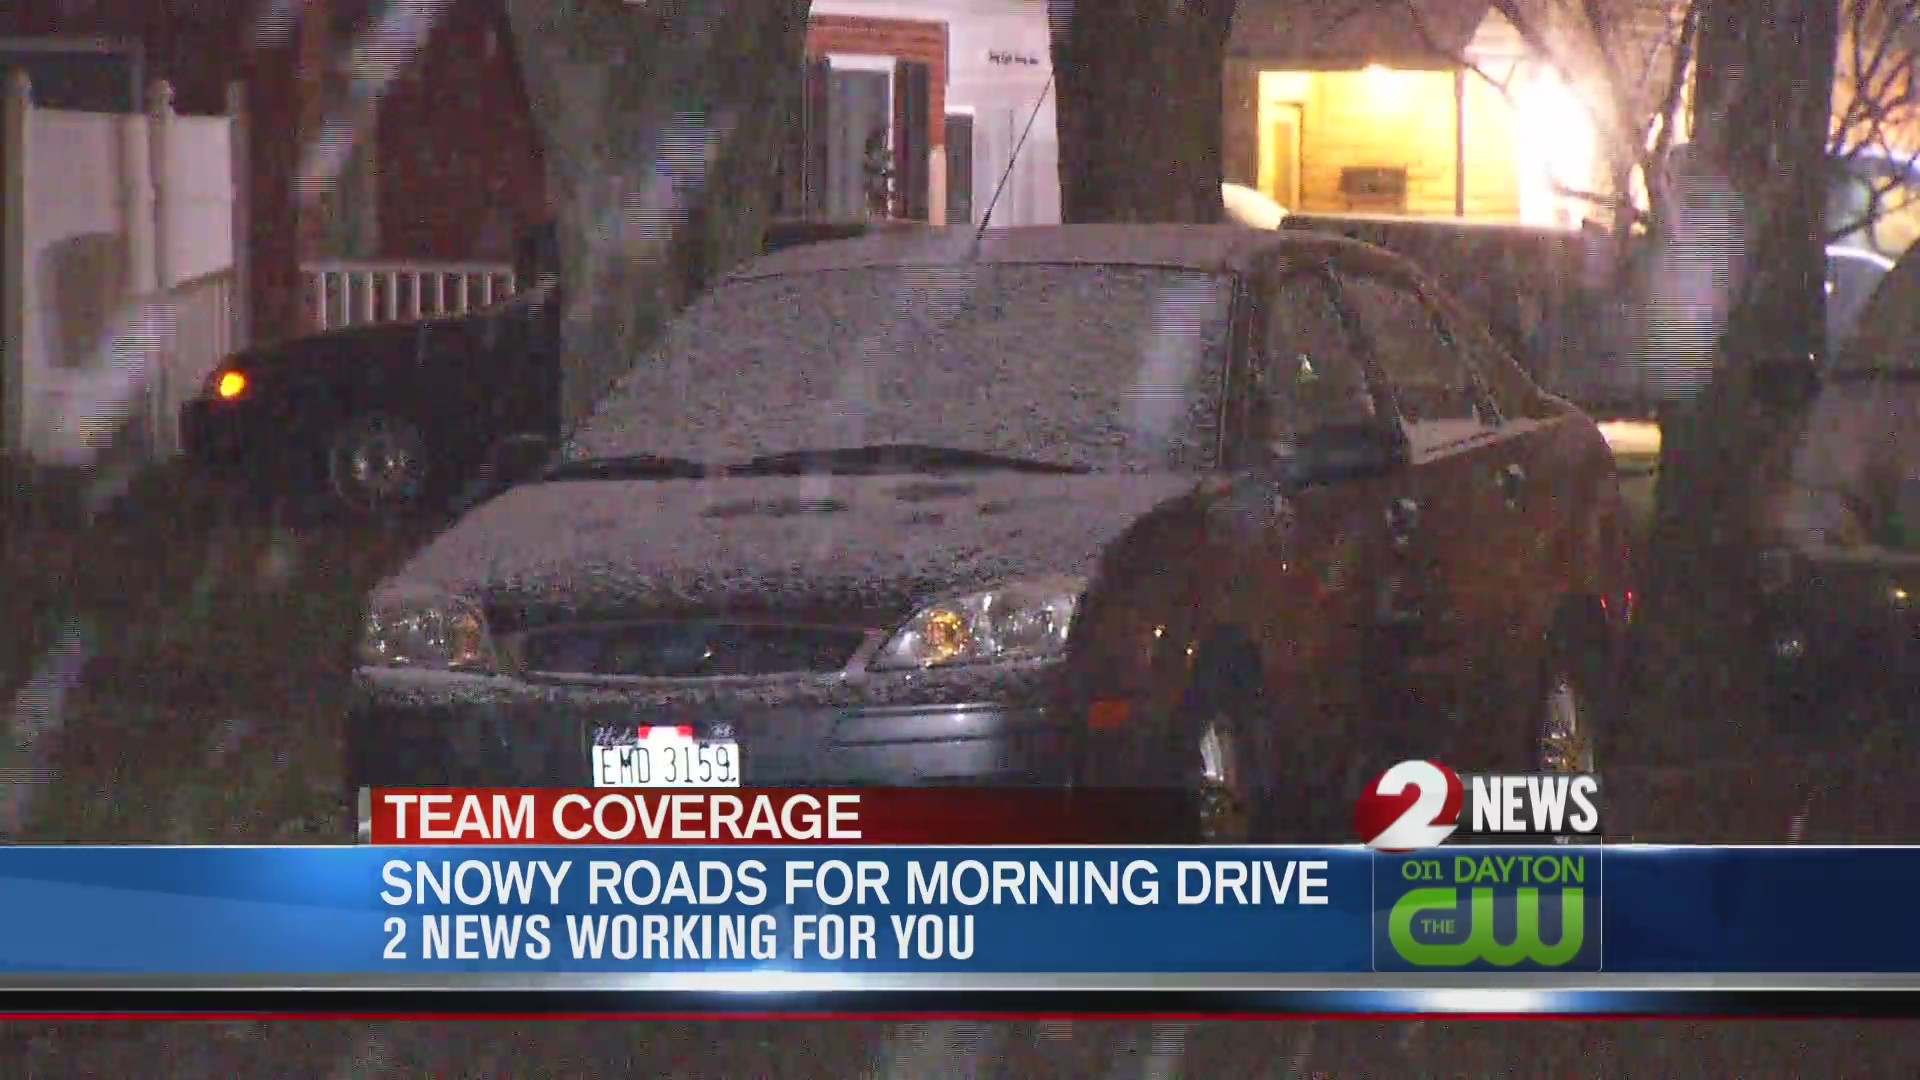 Snow slows morning drive